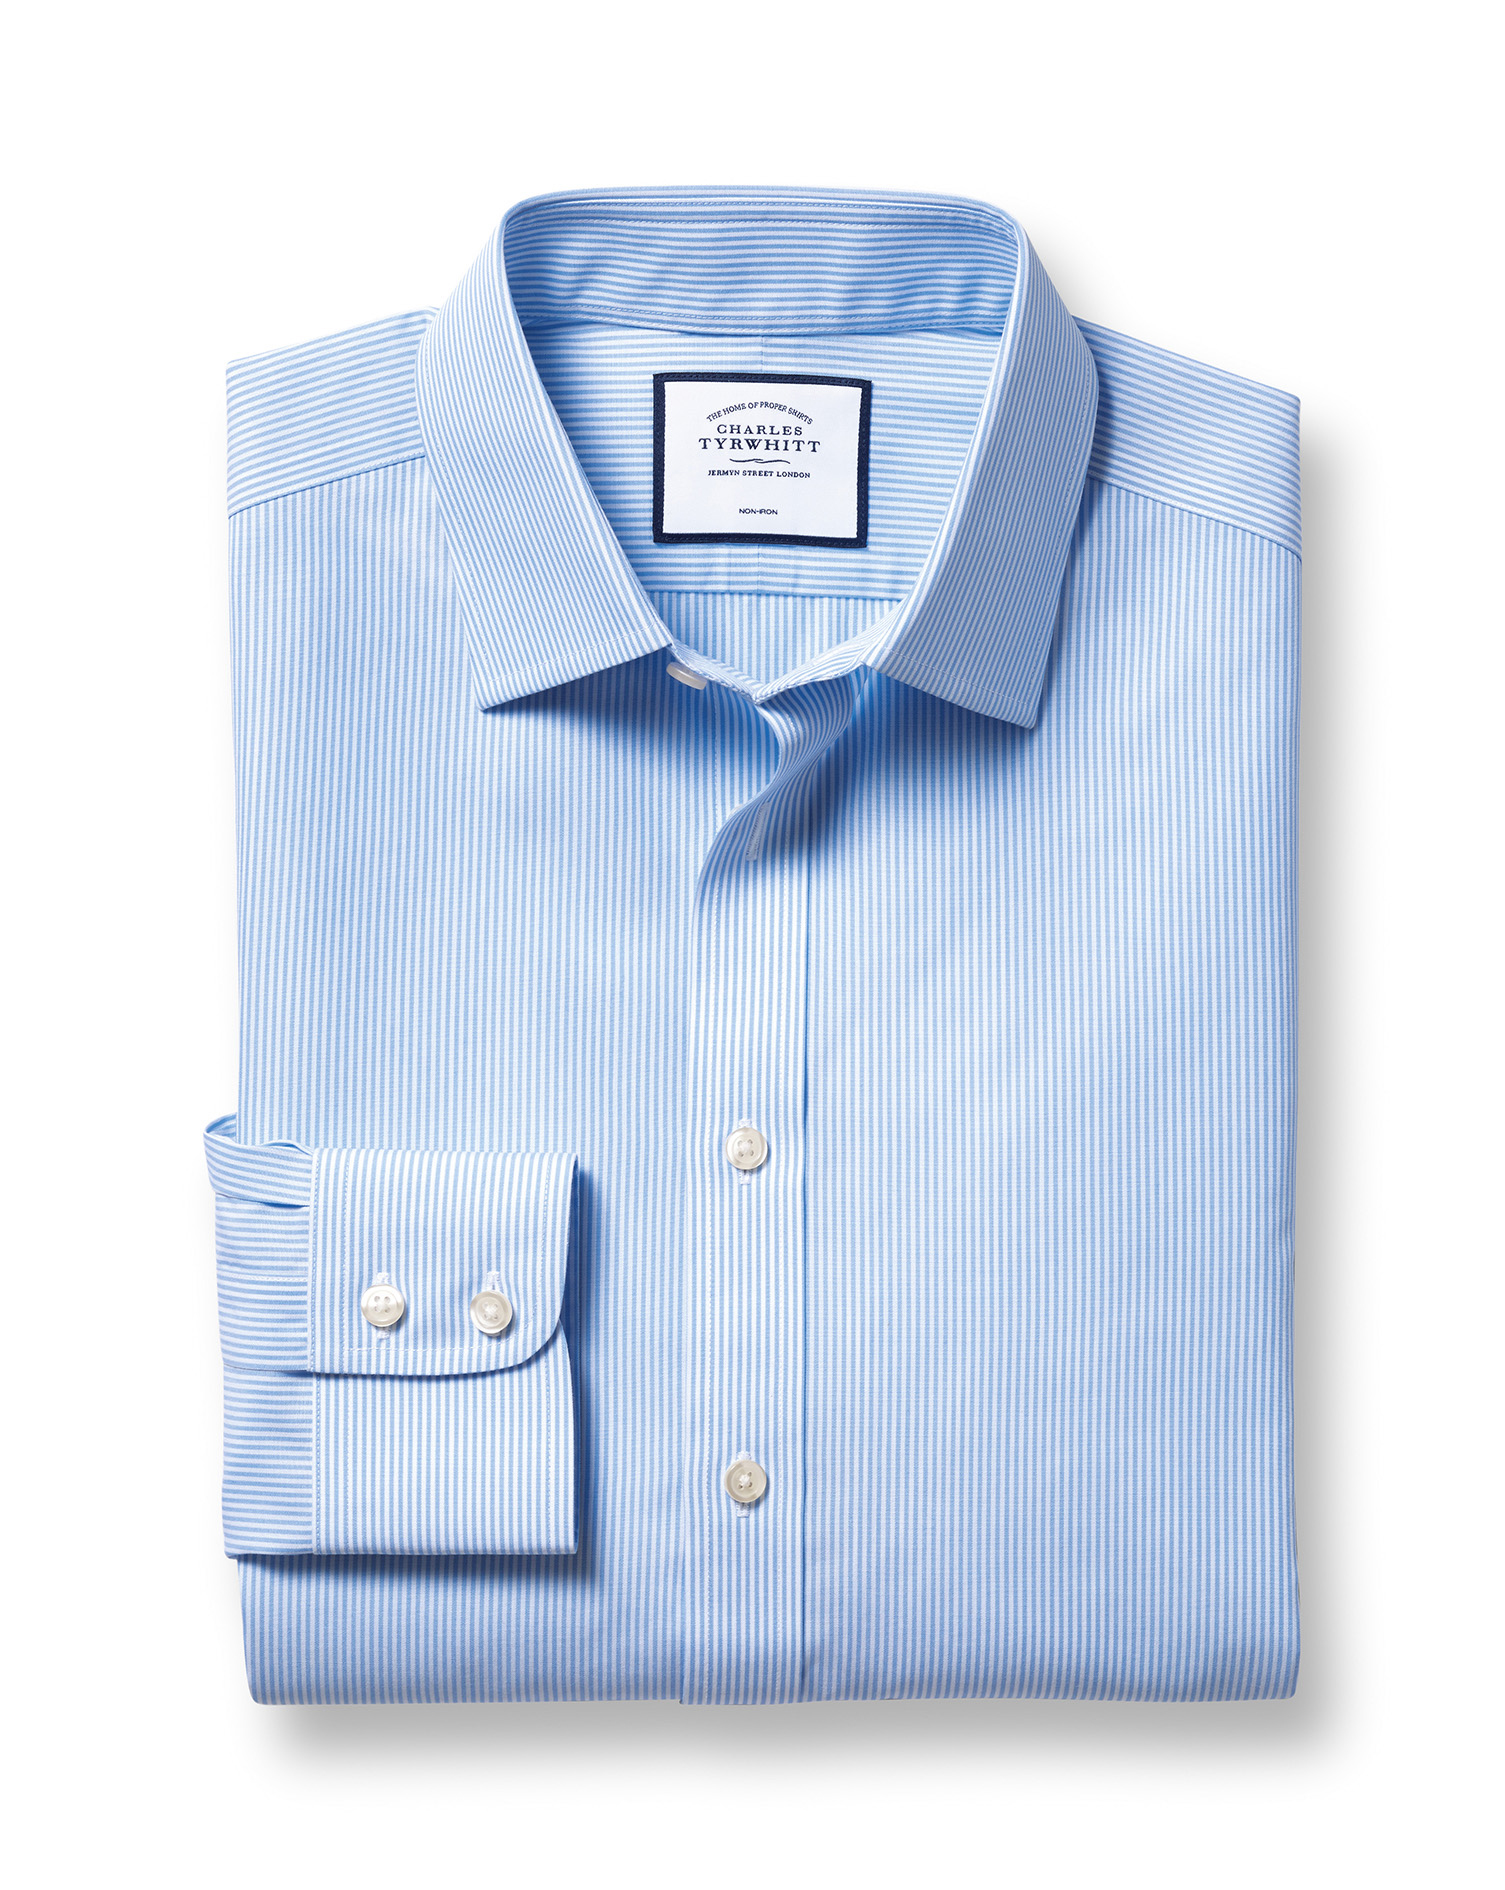 Slim Fit Non-Iron Sky Blue Bengal Stripe Cotton Formal Shirt Double Cuff Size 17/36 by Charles Tyrwh